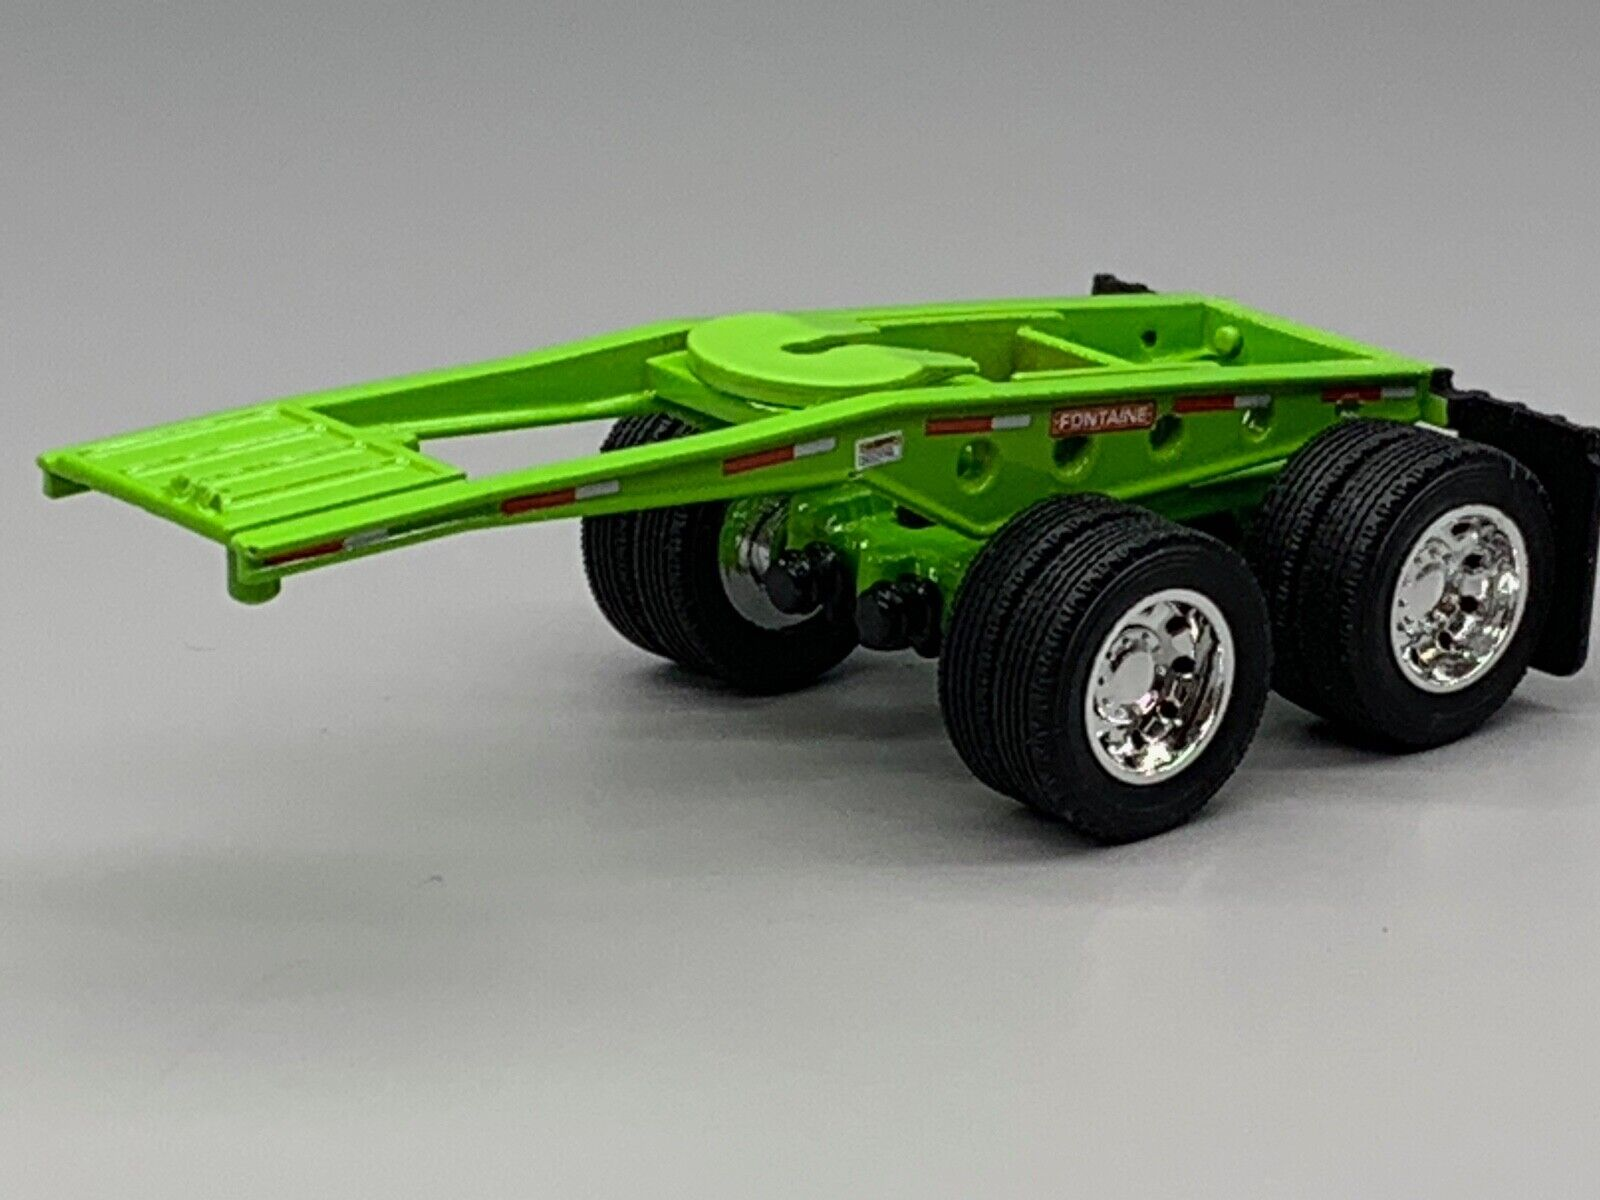 1/64 DCP LIME GREEN FONTAINE MAGNITUDE LOWBOY JEEP 1